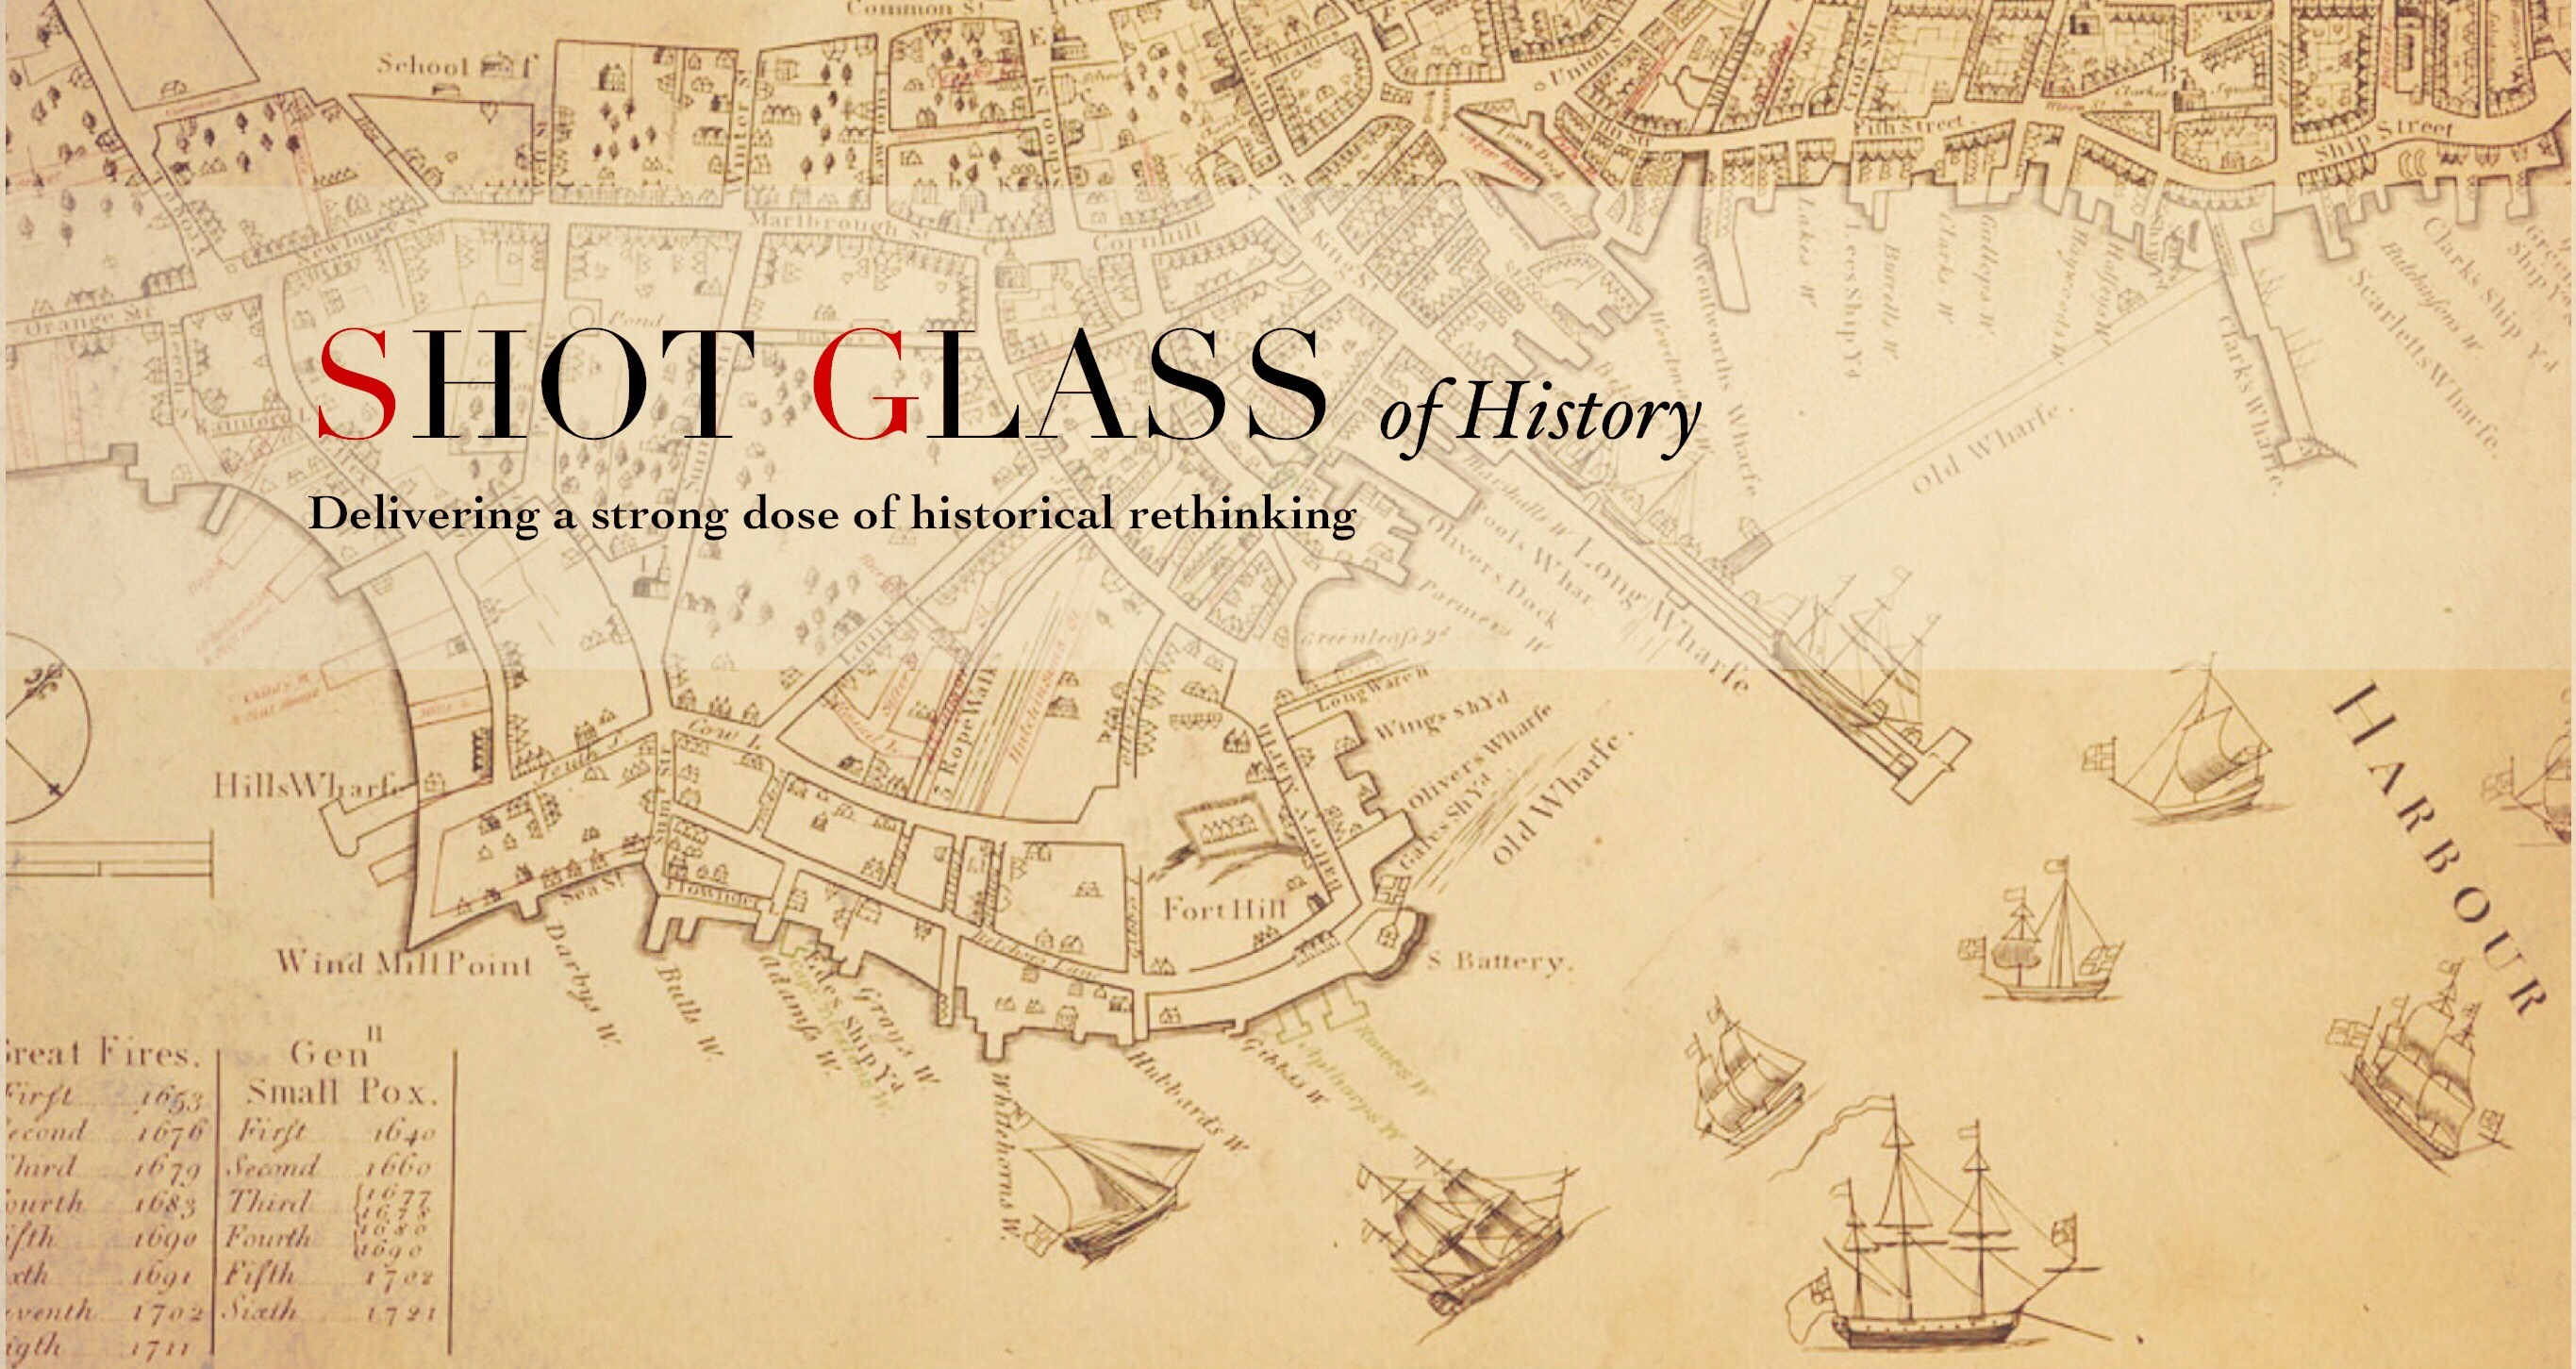 american imperialism and the shays rebellion of shot glass shot glass of history